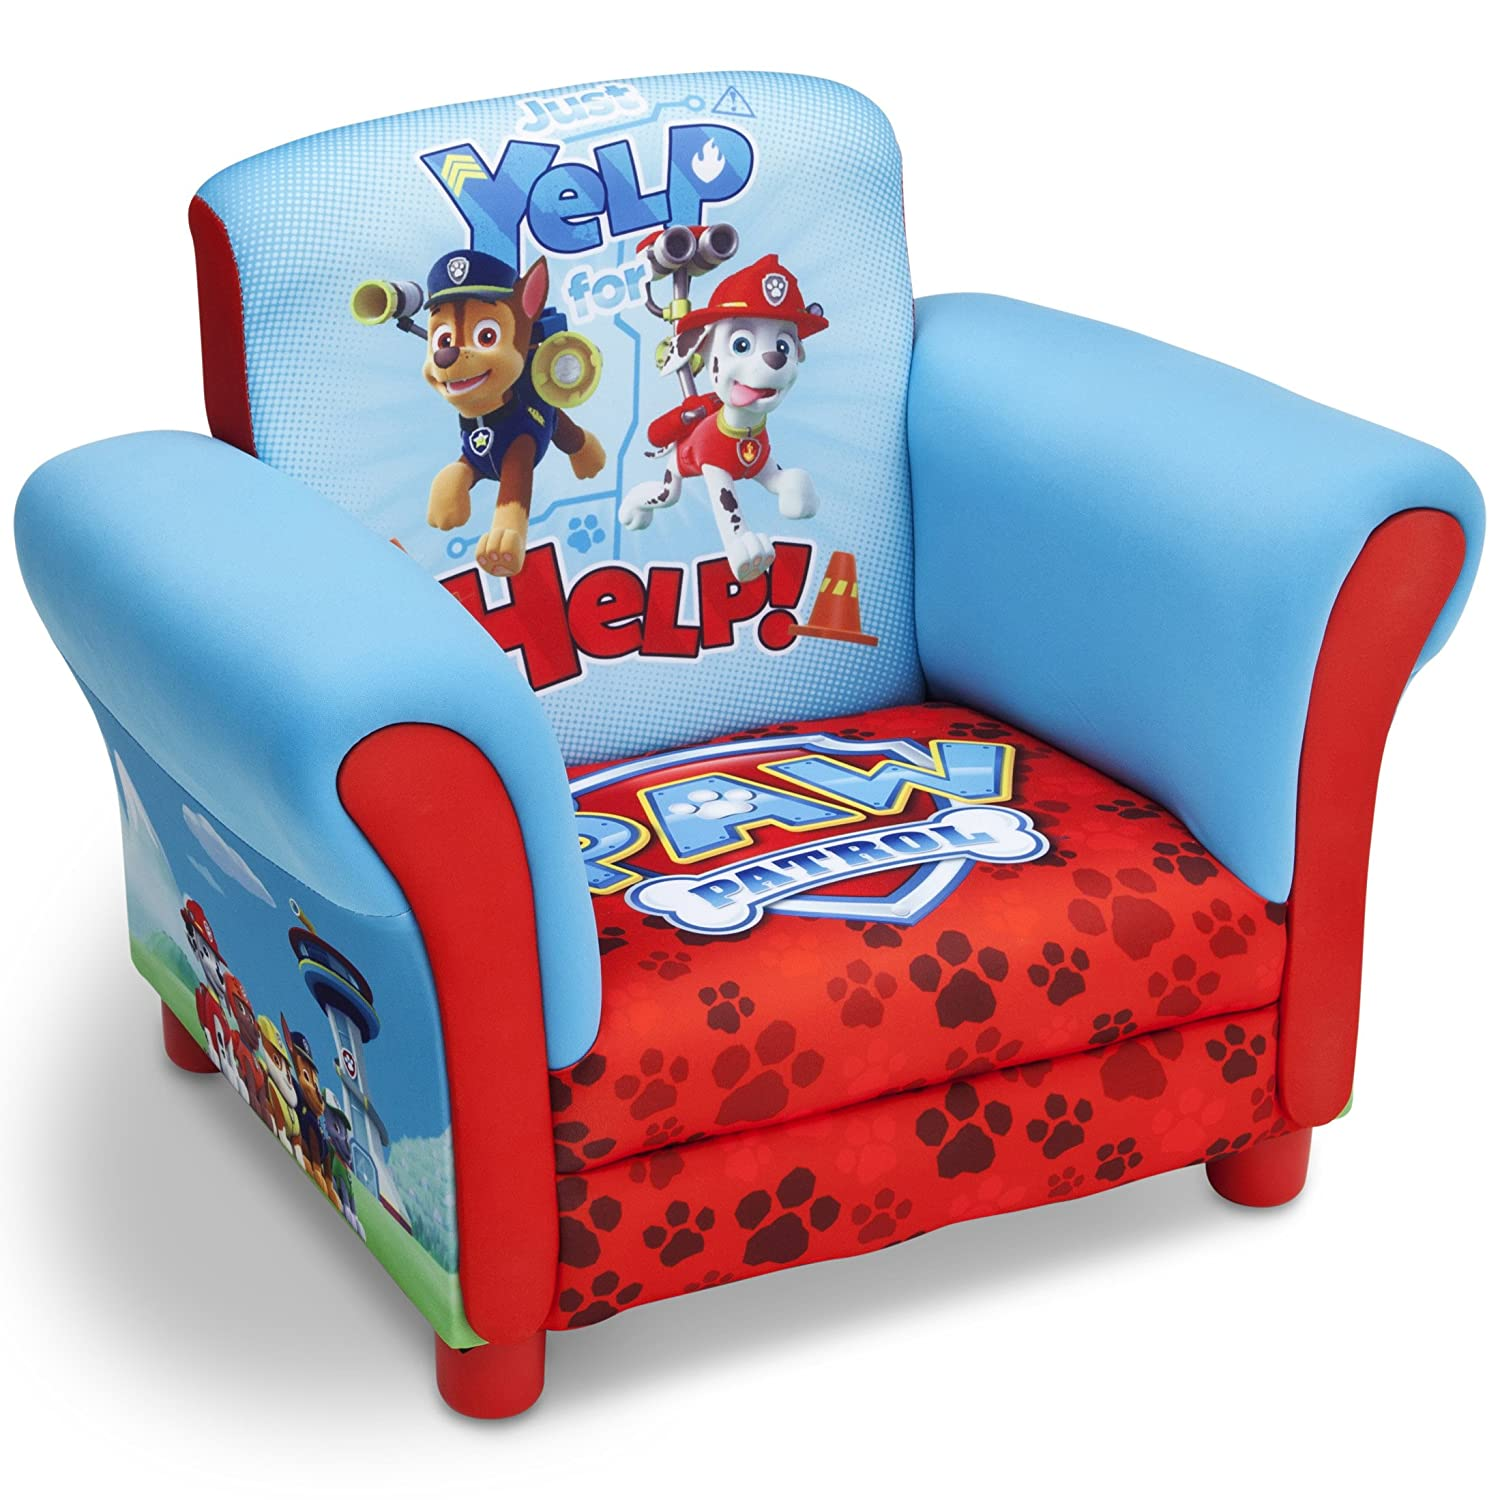 Nick Jr. Upholstered Chair, Paw Patrol Delta Children UP85822PW